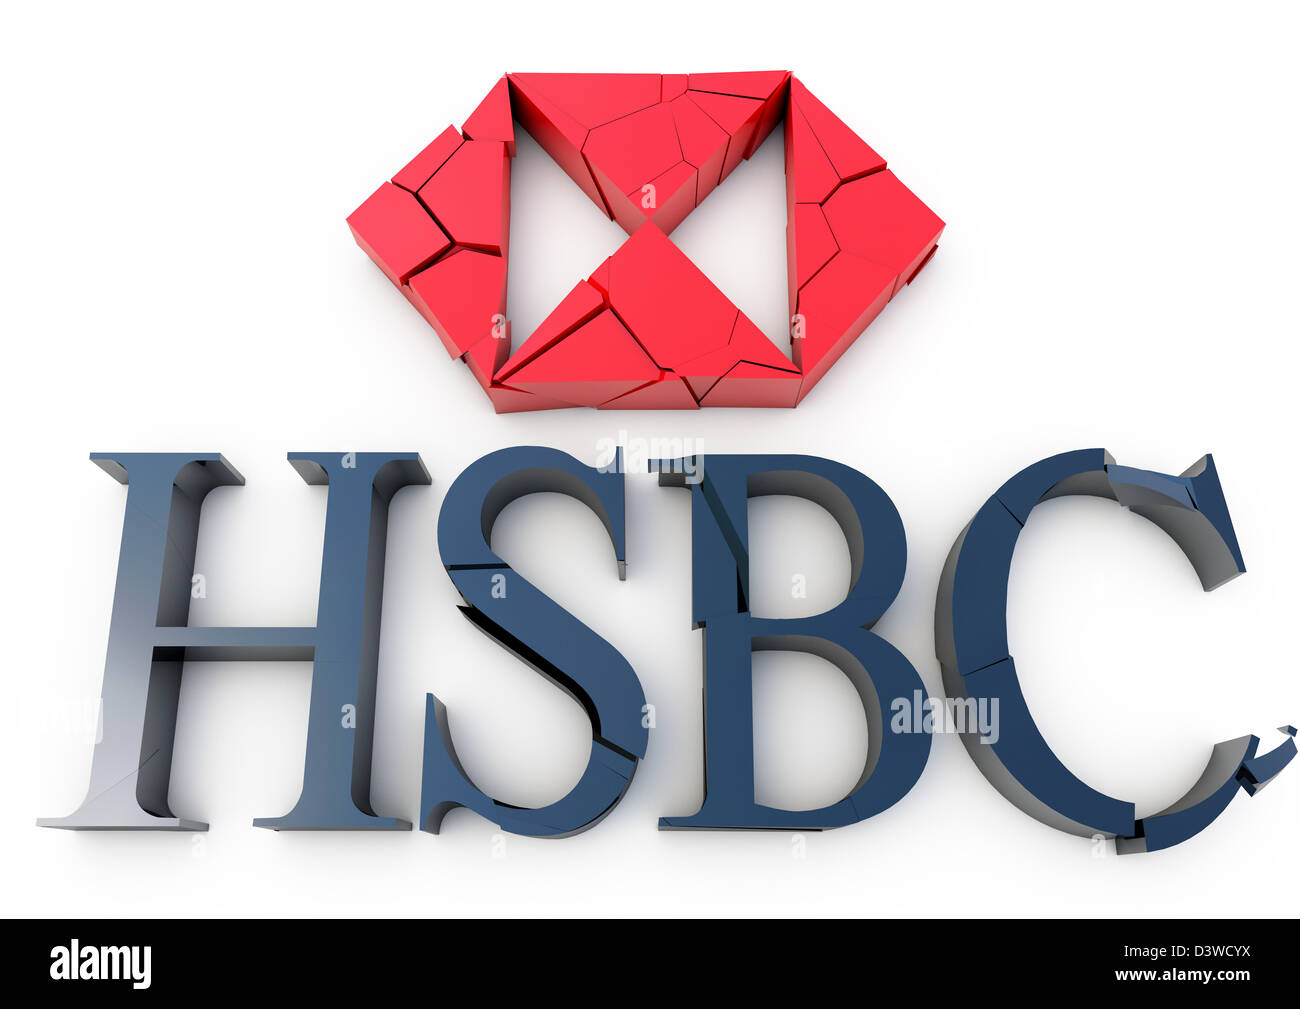 3D render of a cracking and crumbling HSBC bank logo - Concept - White background - Stock Image